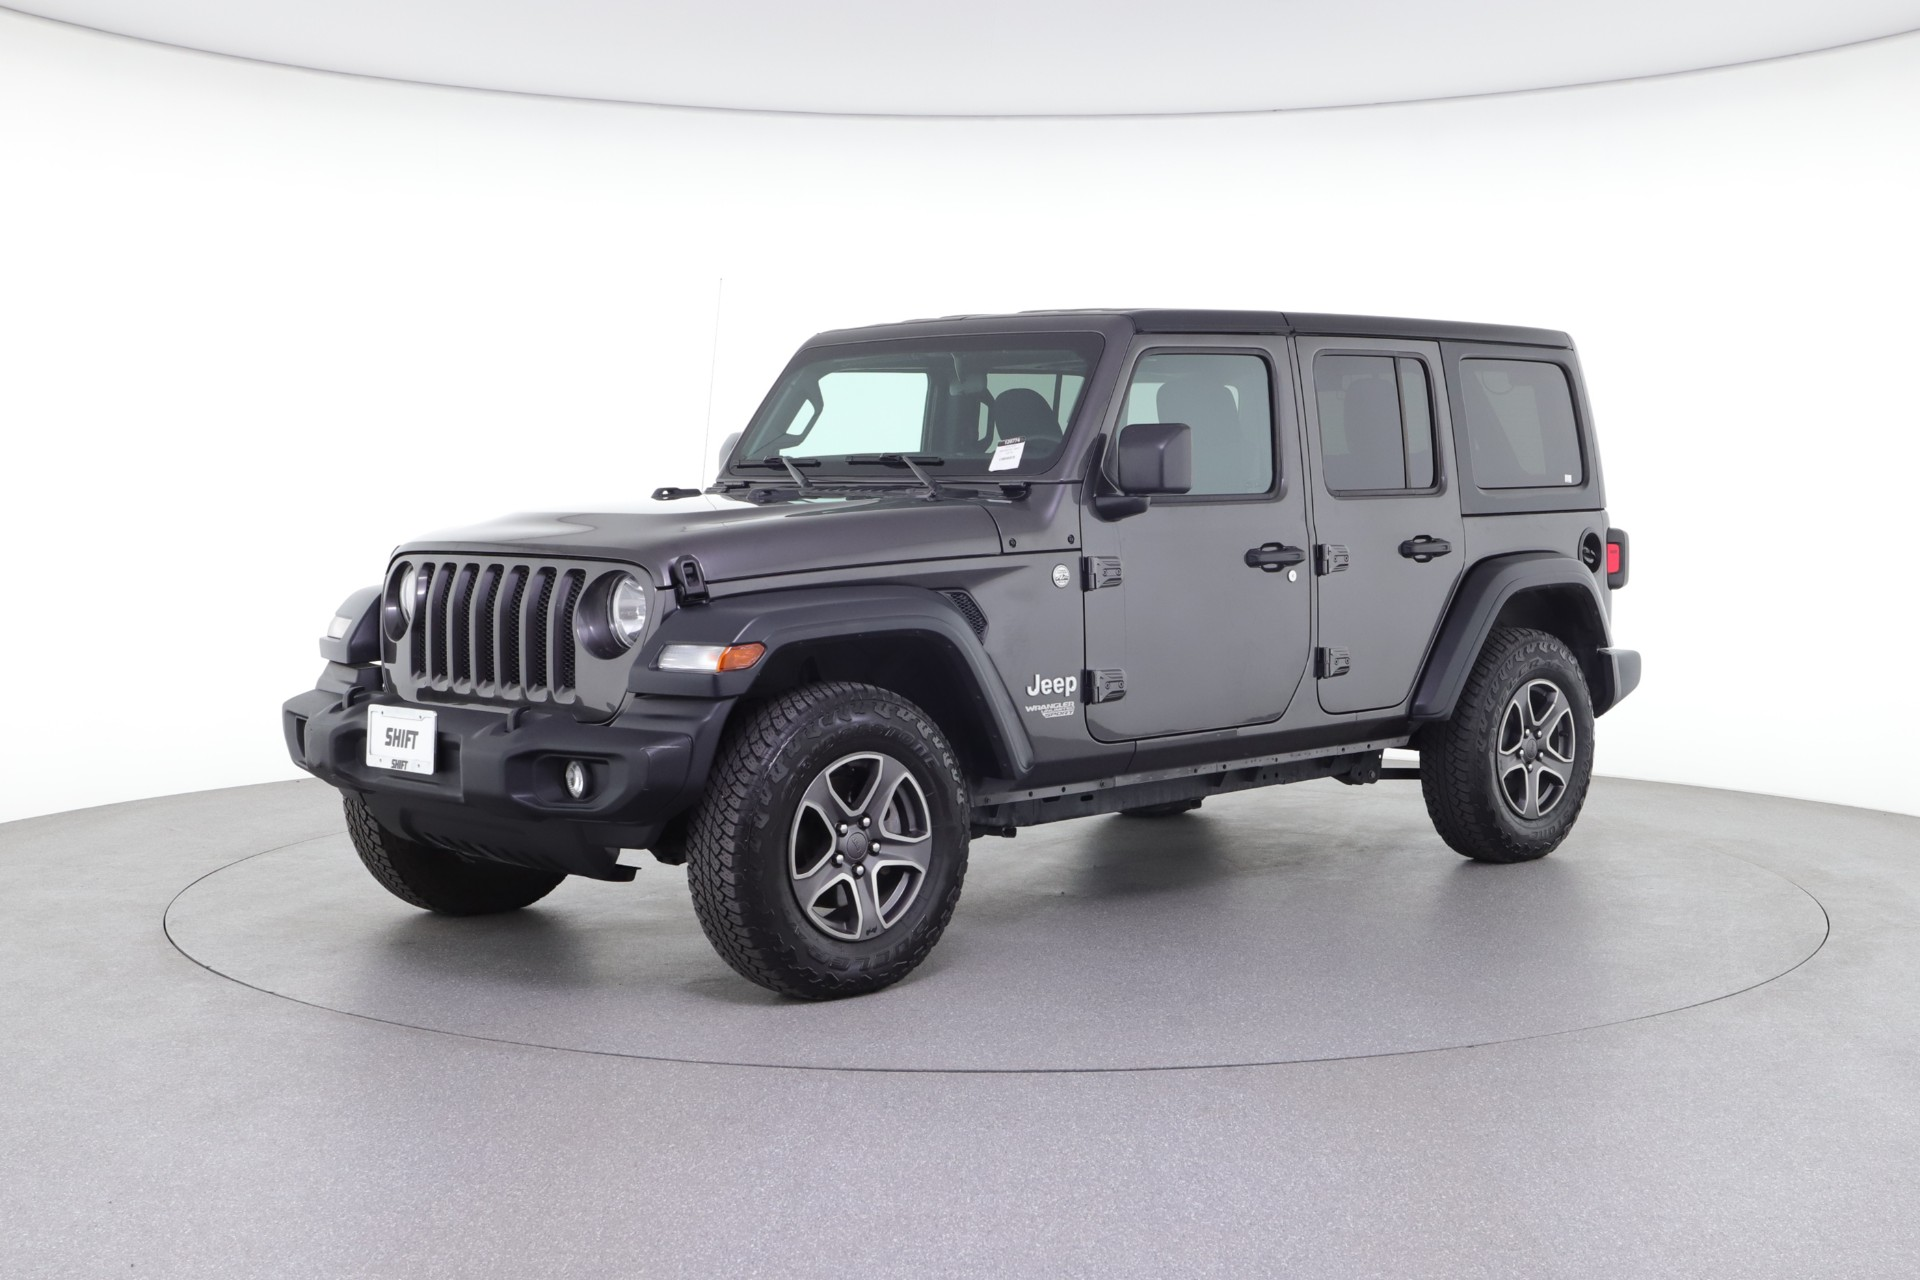 2018 Jeep Wrangler Unlimited Sport S (from $39,950)